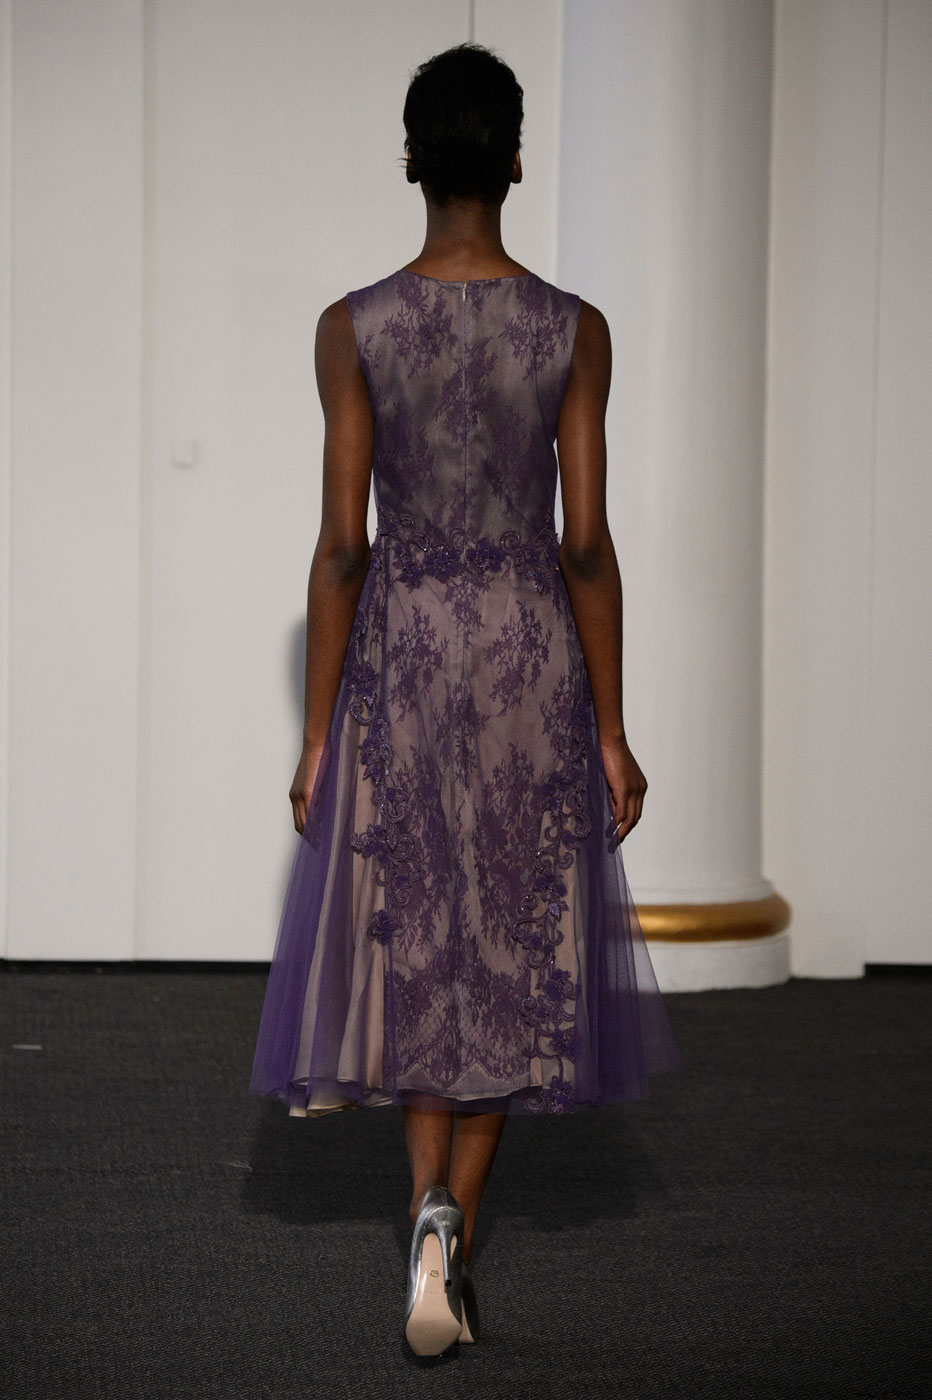 Busardi-fashion-runway-show-haute-couture-paris-spring-2015-the-impression-42